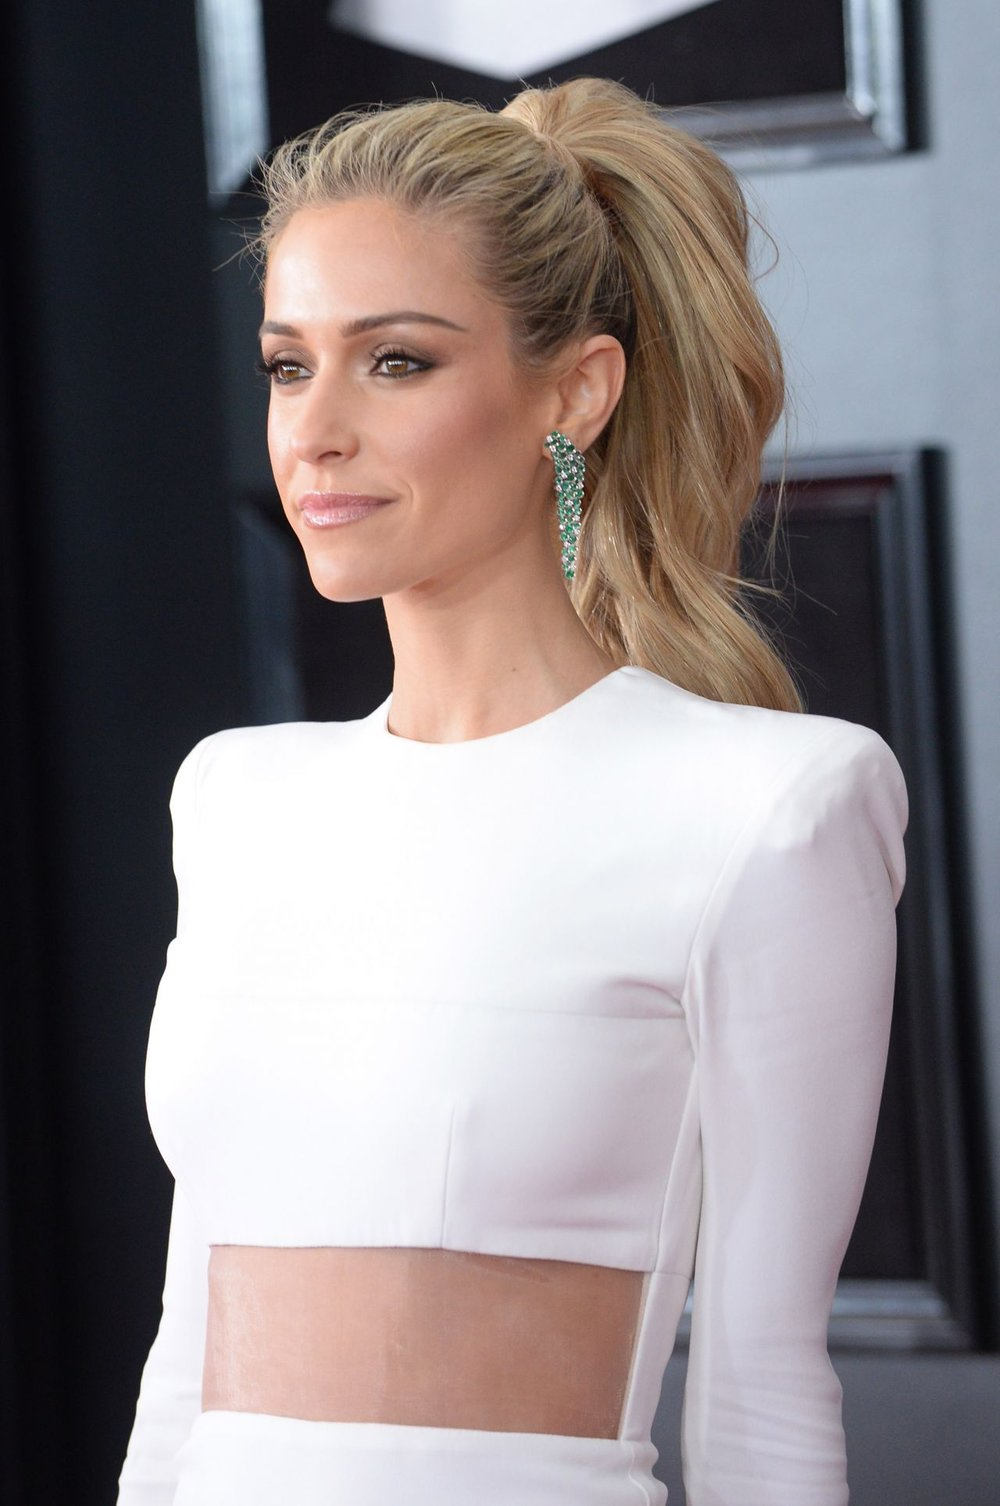 kristin-cavallari-2018-grammy-awards-in-new-york-4.jpg